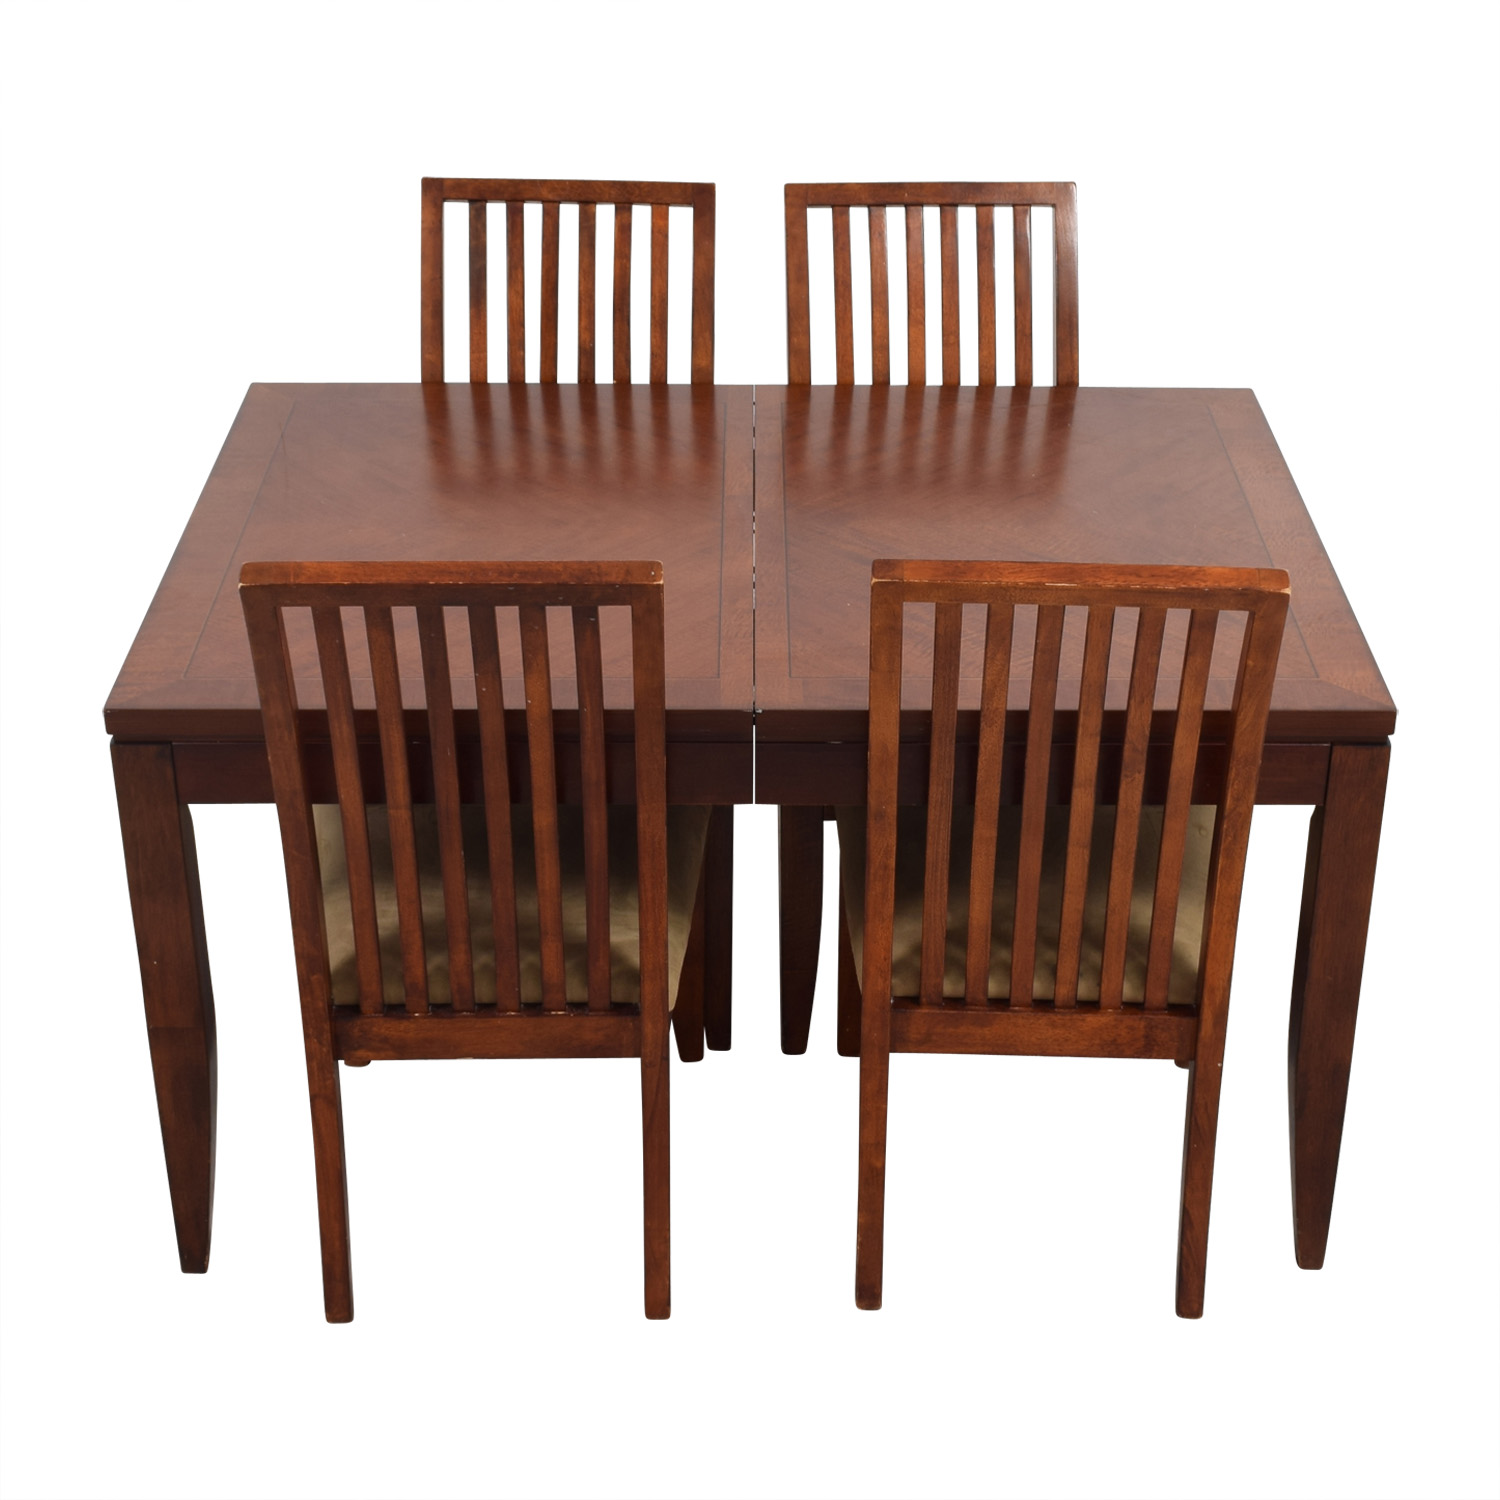 Macys Macys Wood Dining Set with Extendable Leaf and Chairs Dining Sets